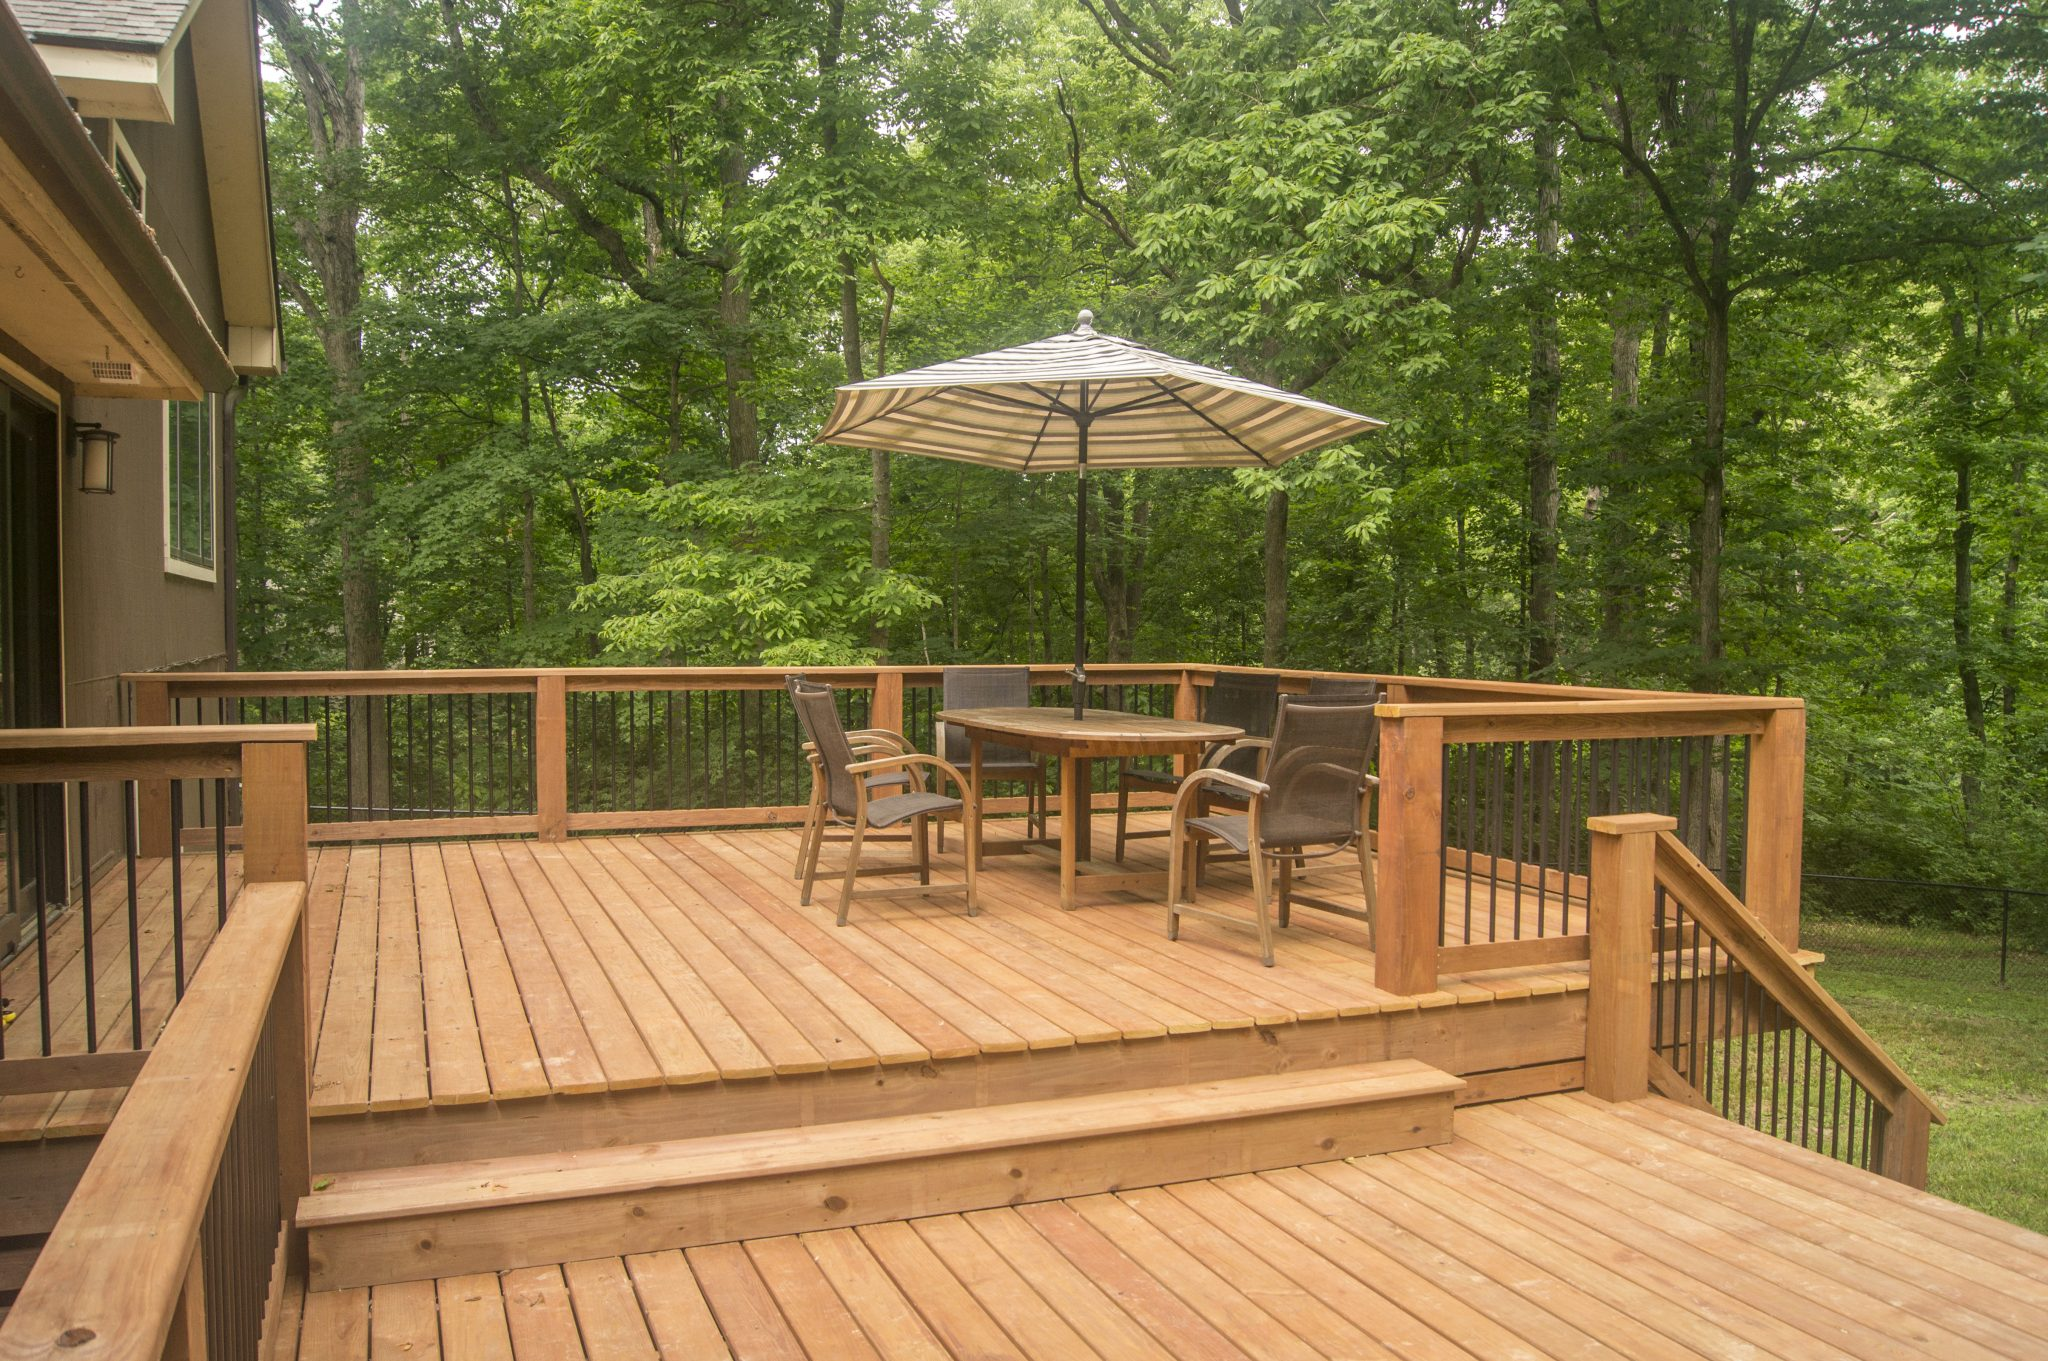 New backyard deck built by TrueSon Exteriors featuring patio furniture.